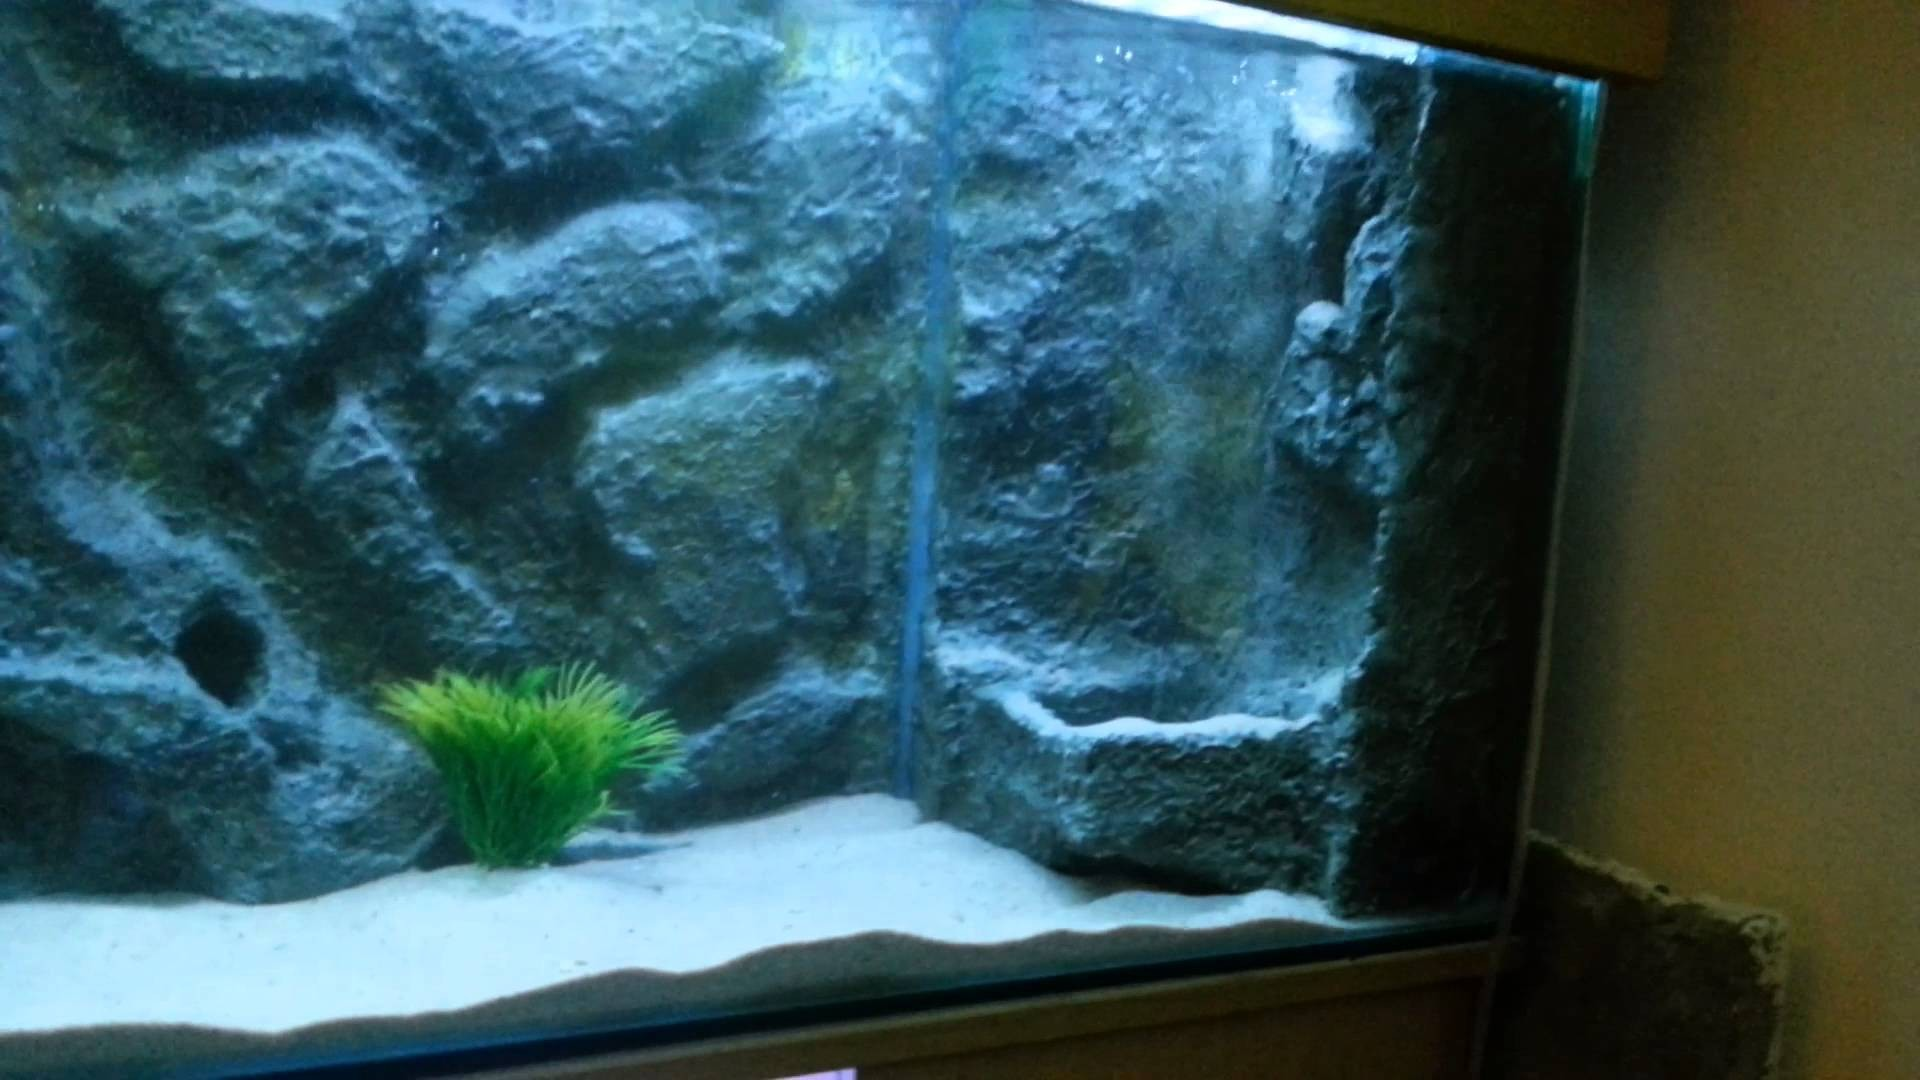 Iphone Wallpaper Waterfall Aquarium Background 183 ① Download Free Wallpapers For